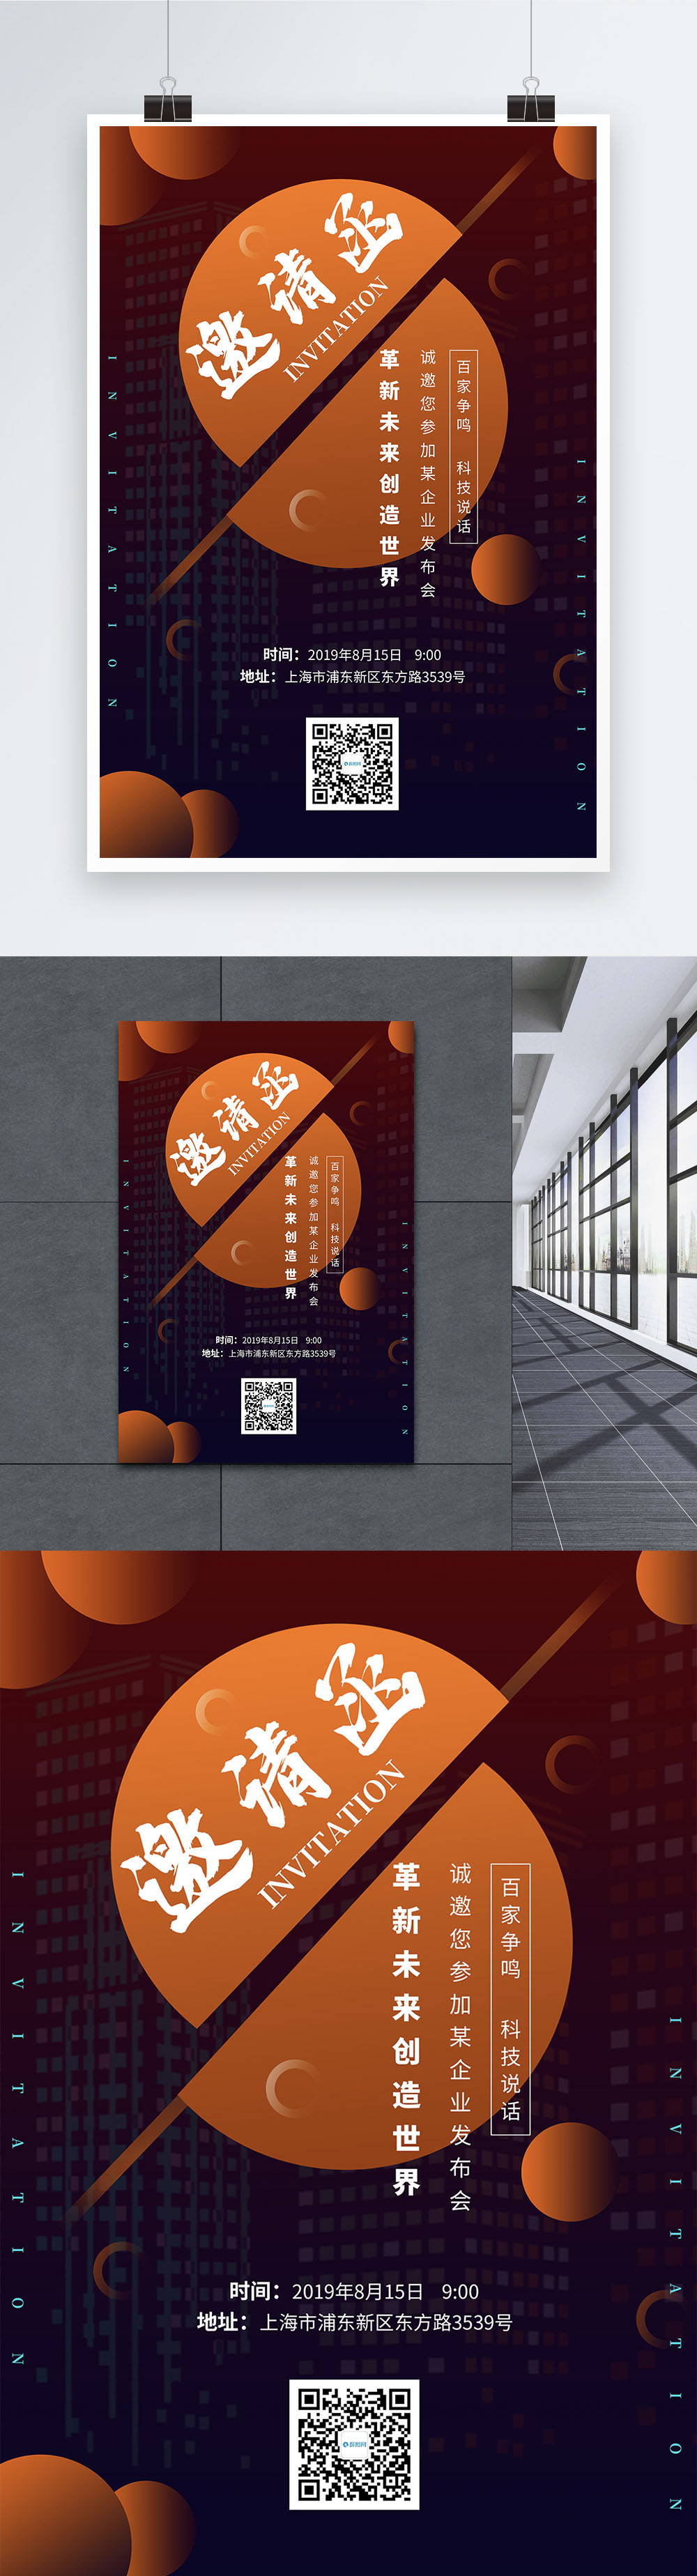 Corporate invitation poster template image_picture free download  400602857_lovepik.com